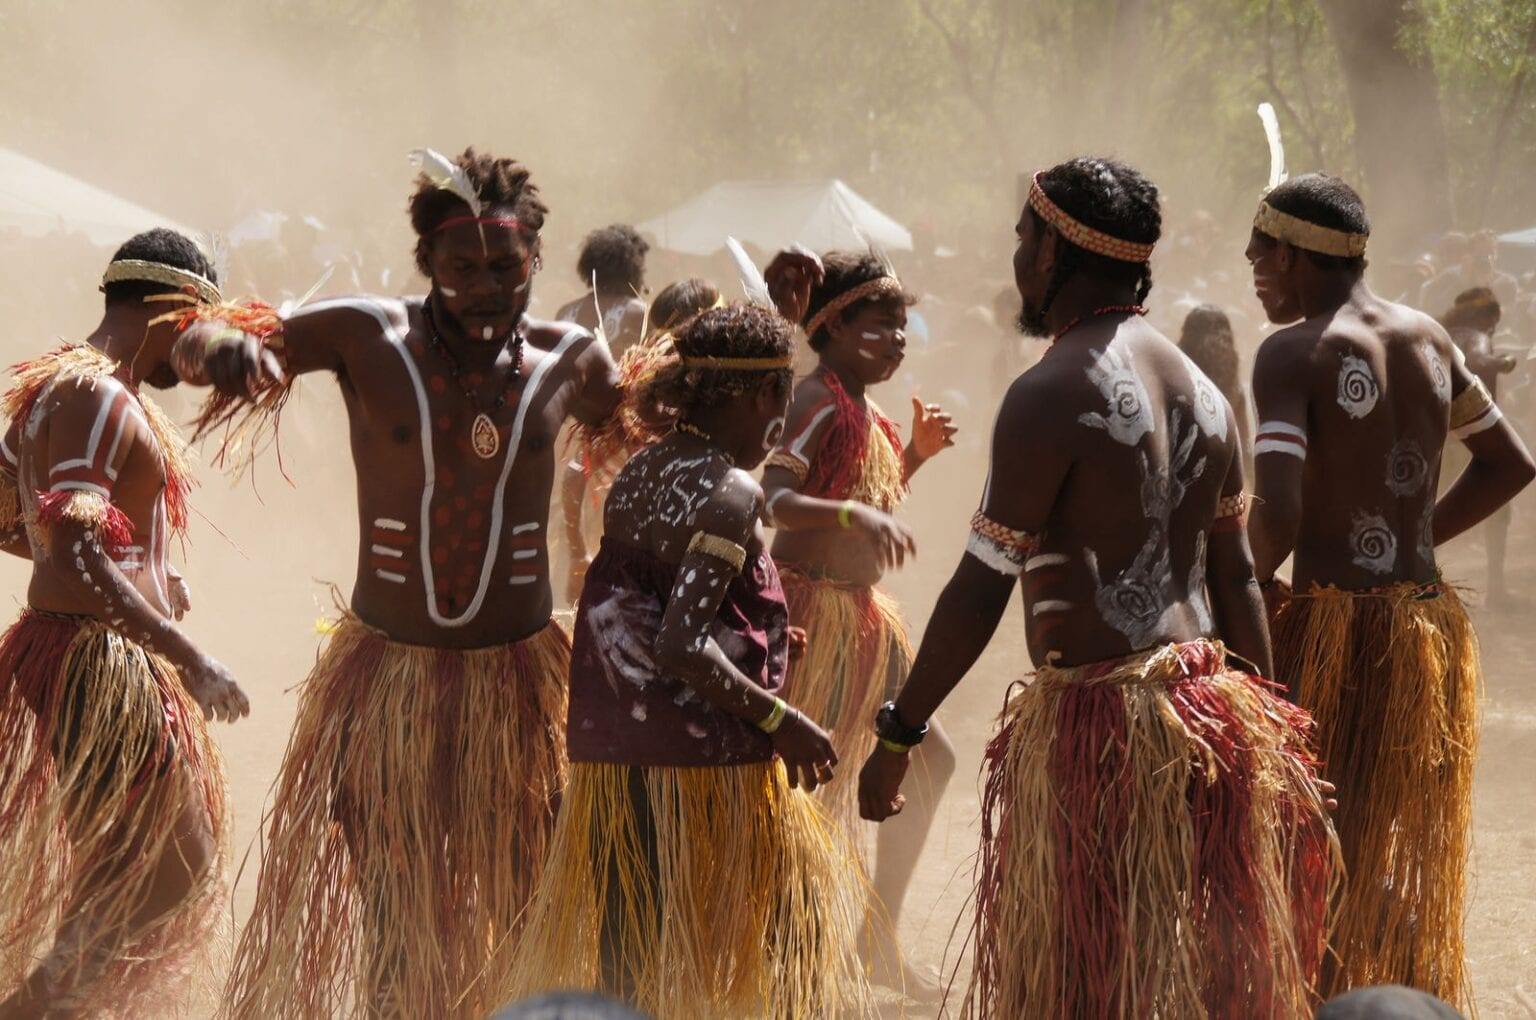 How Do Western Systems And Structures Impact On Aboriginal And Torres Strait Islander Cultures?